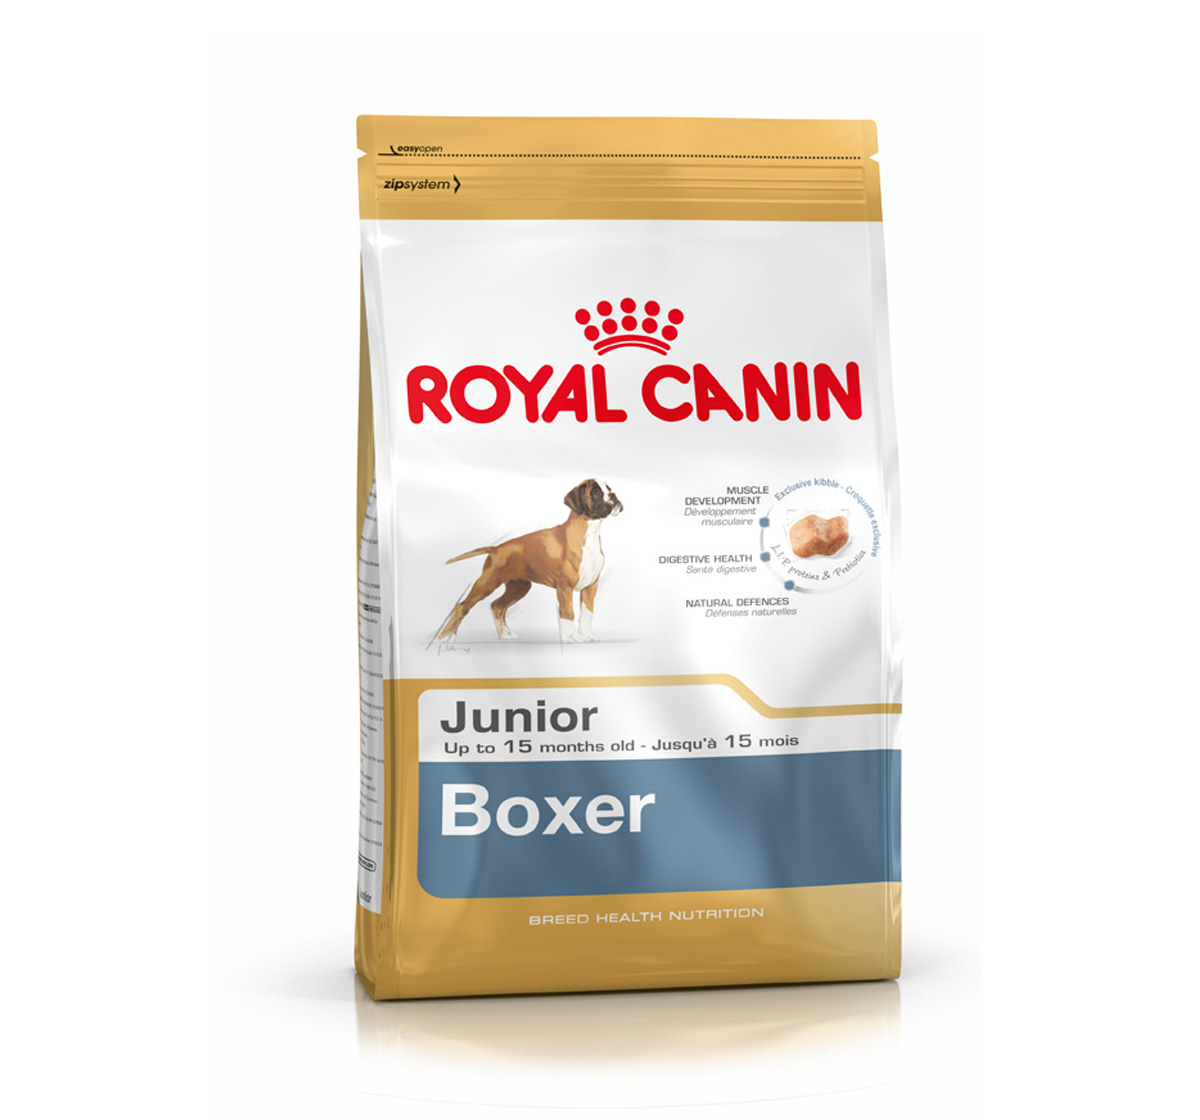 royal canin boxer junior 3 kg dogspot online pet supply store. Black Bedroom Furniture Sets. Home Design Ideas